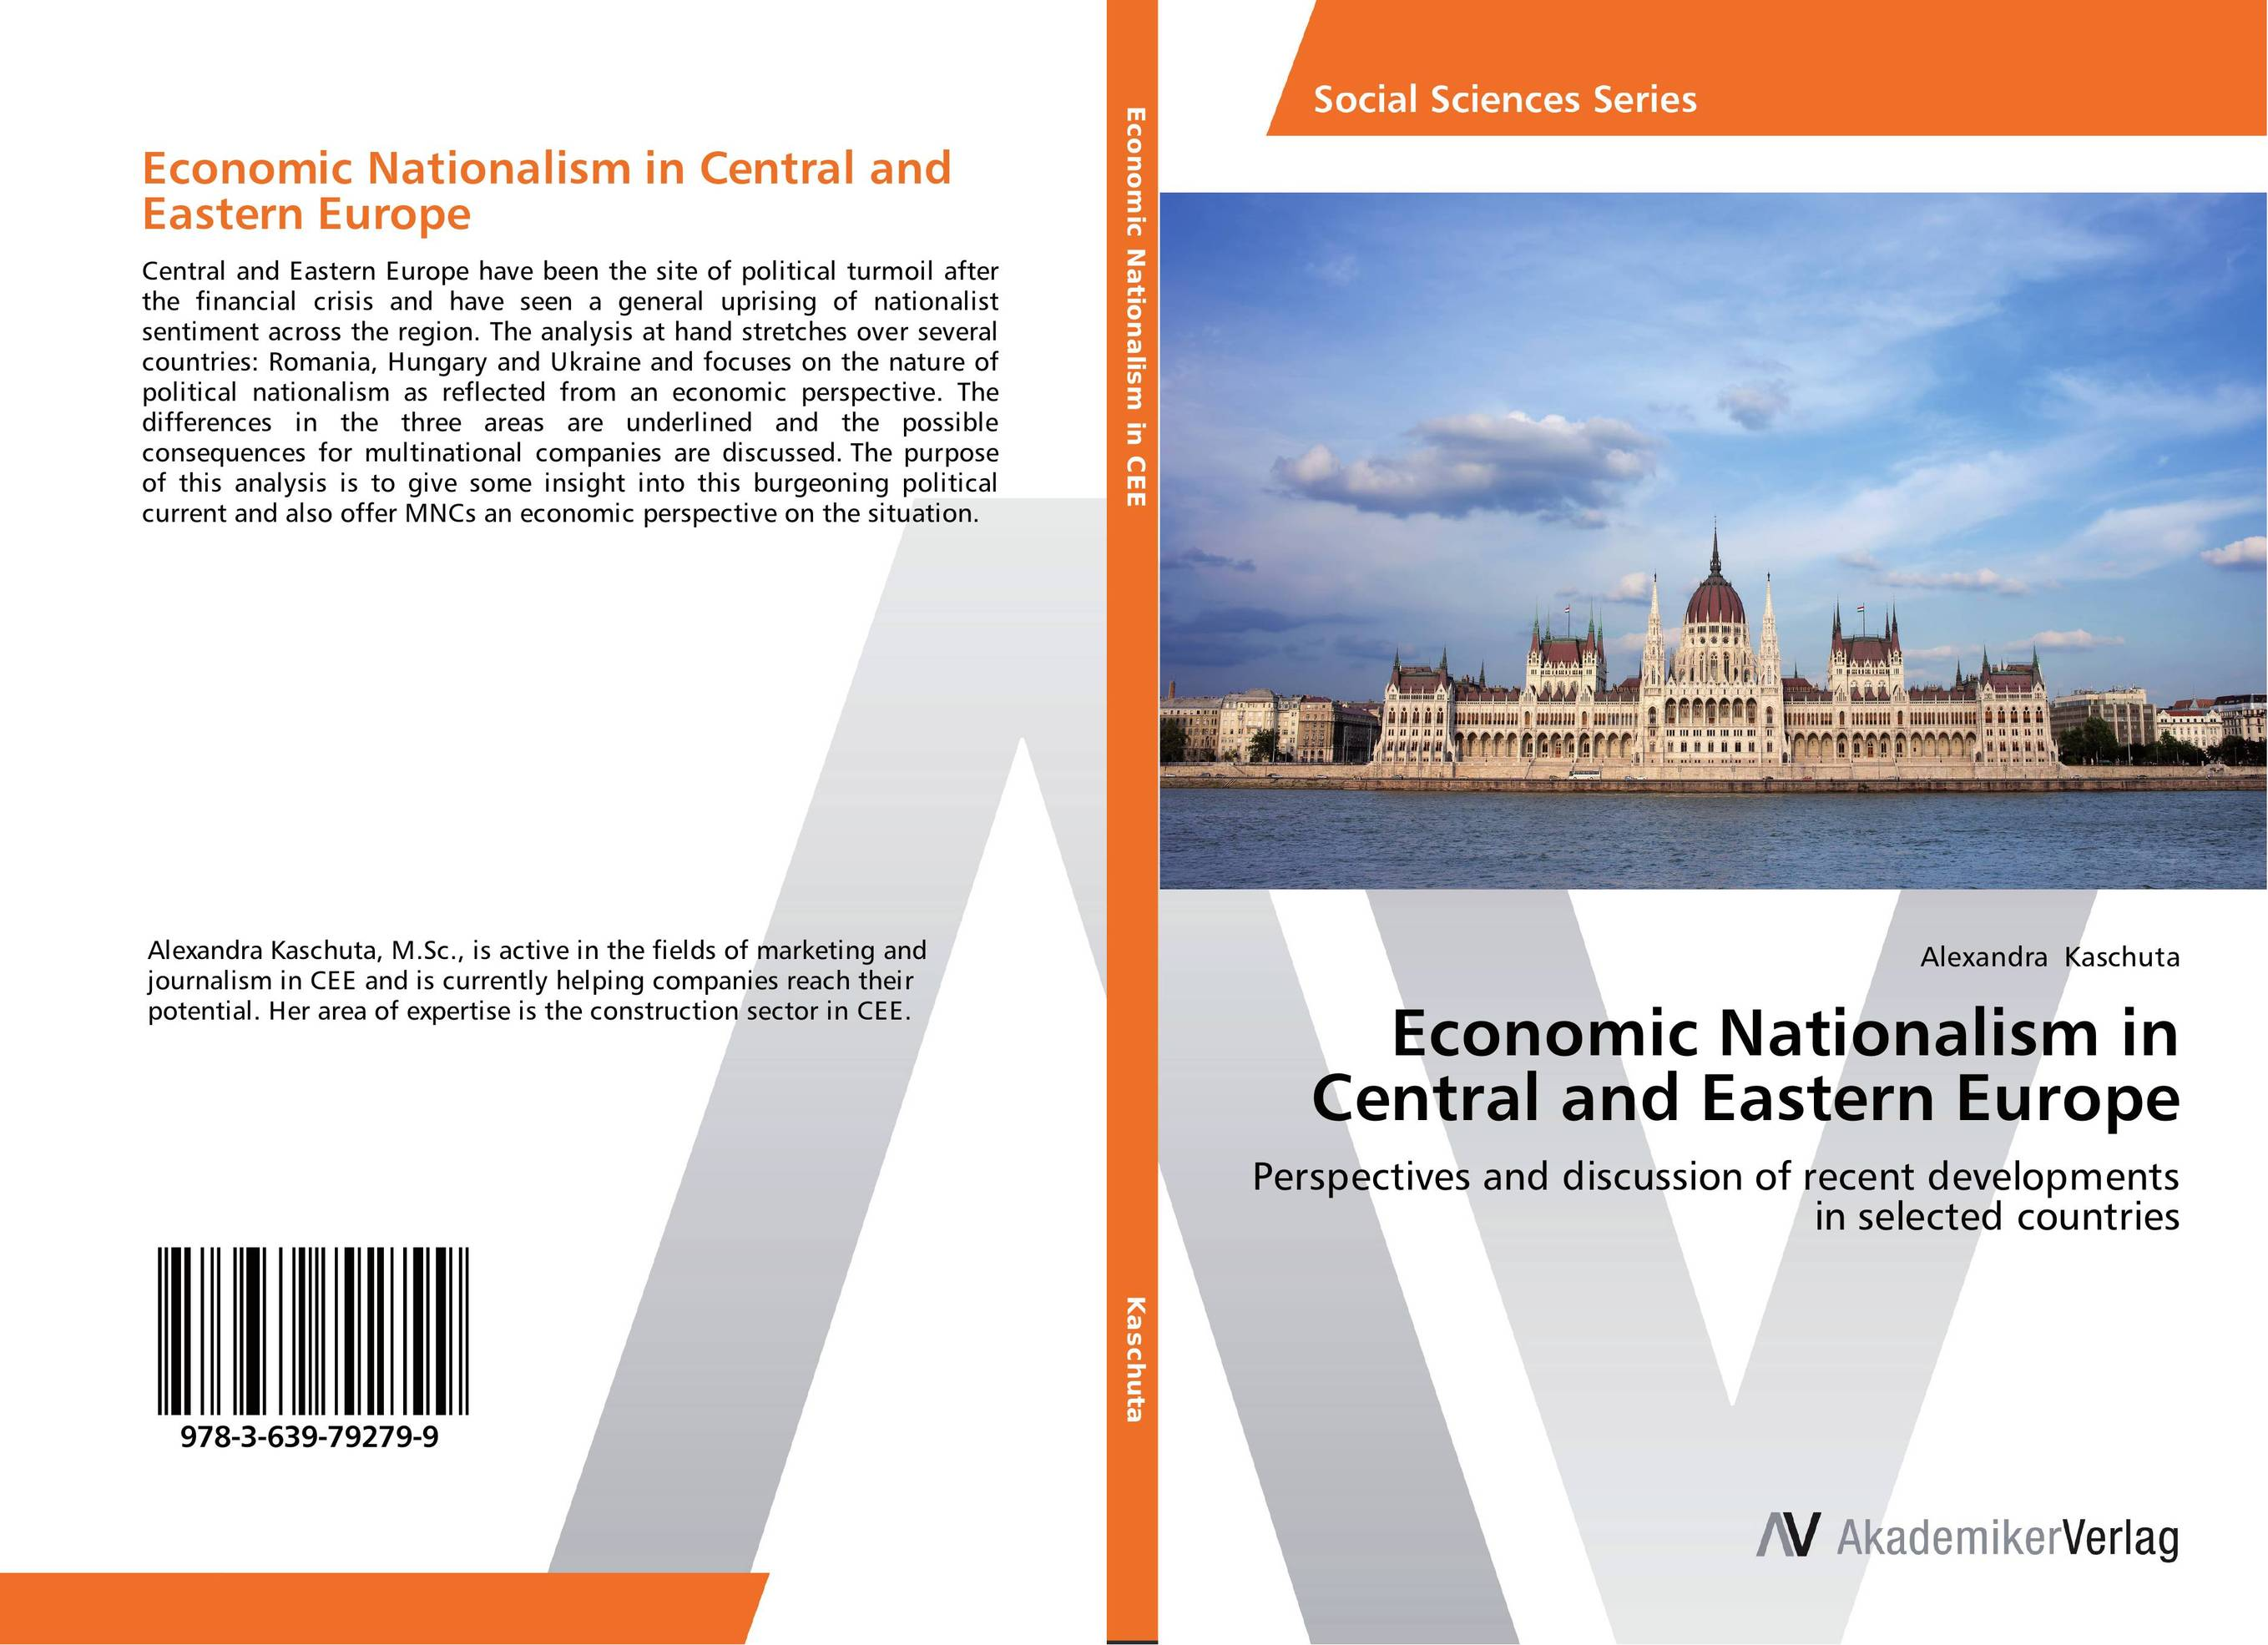 Economic Nationalism in Central and Eastern Europe from financial crisis to economic and political distress